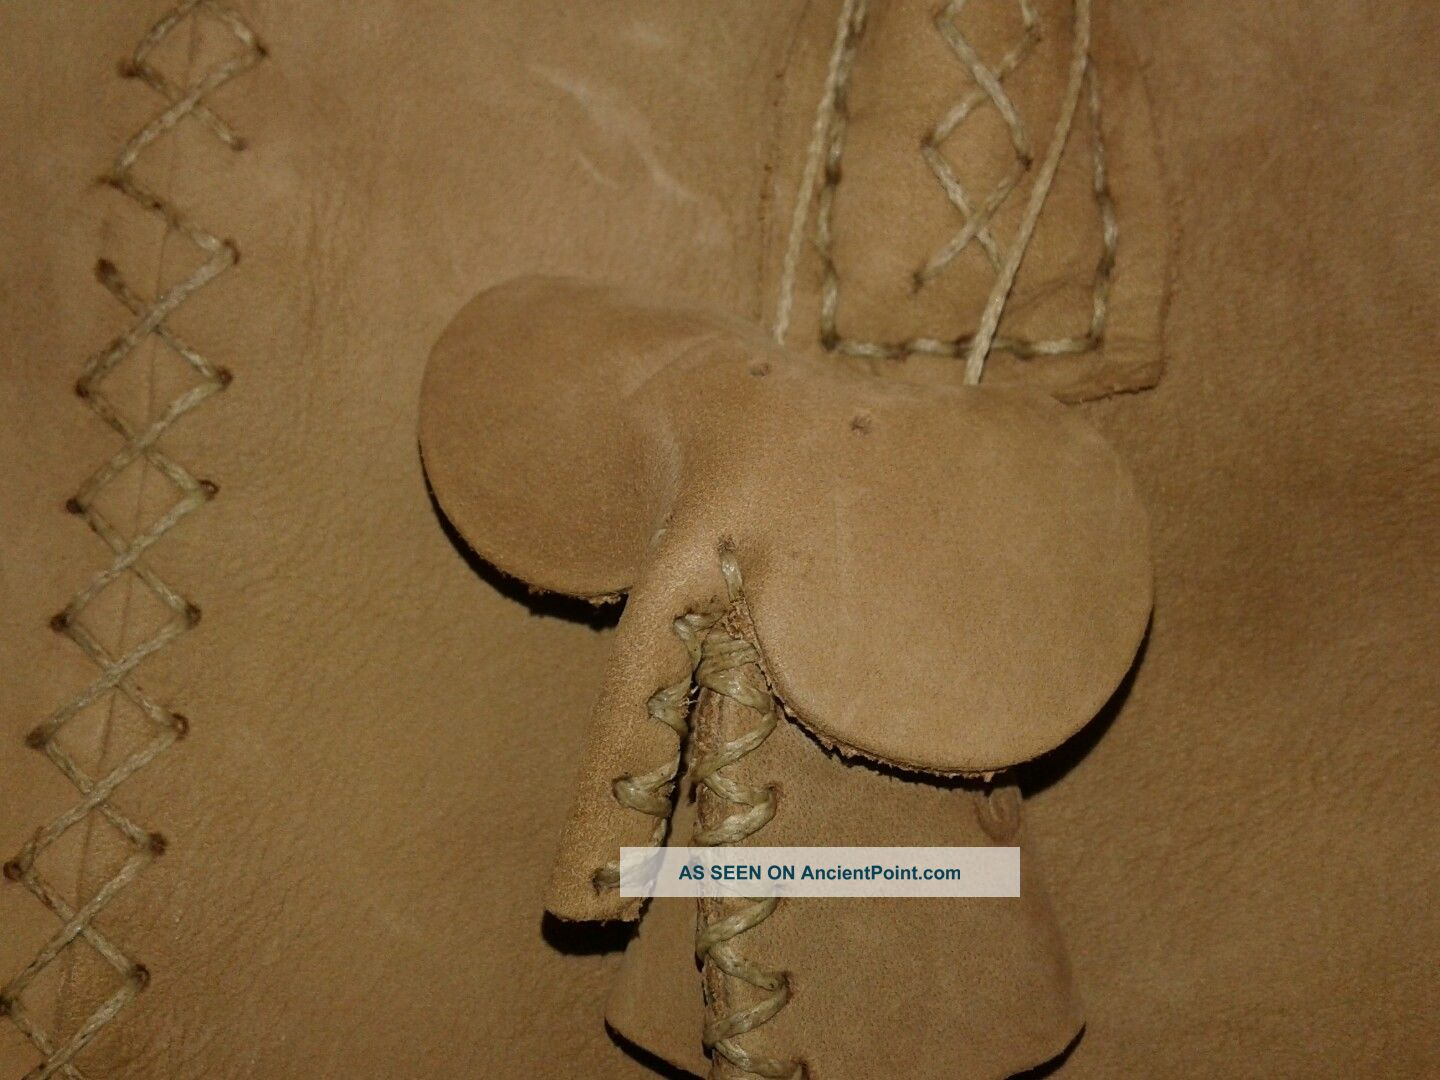 Tsonga Handbag From South Africa Handmade Suede With Whip Stitch Detail Other African Antiques photo